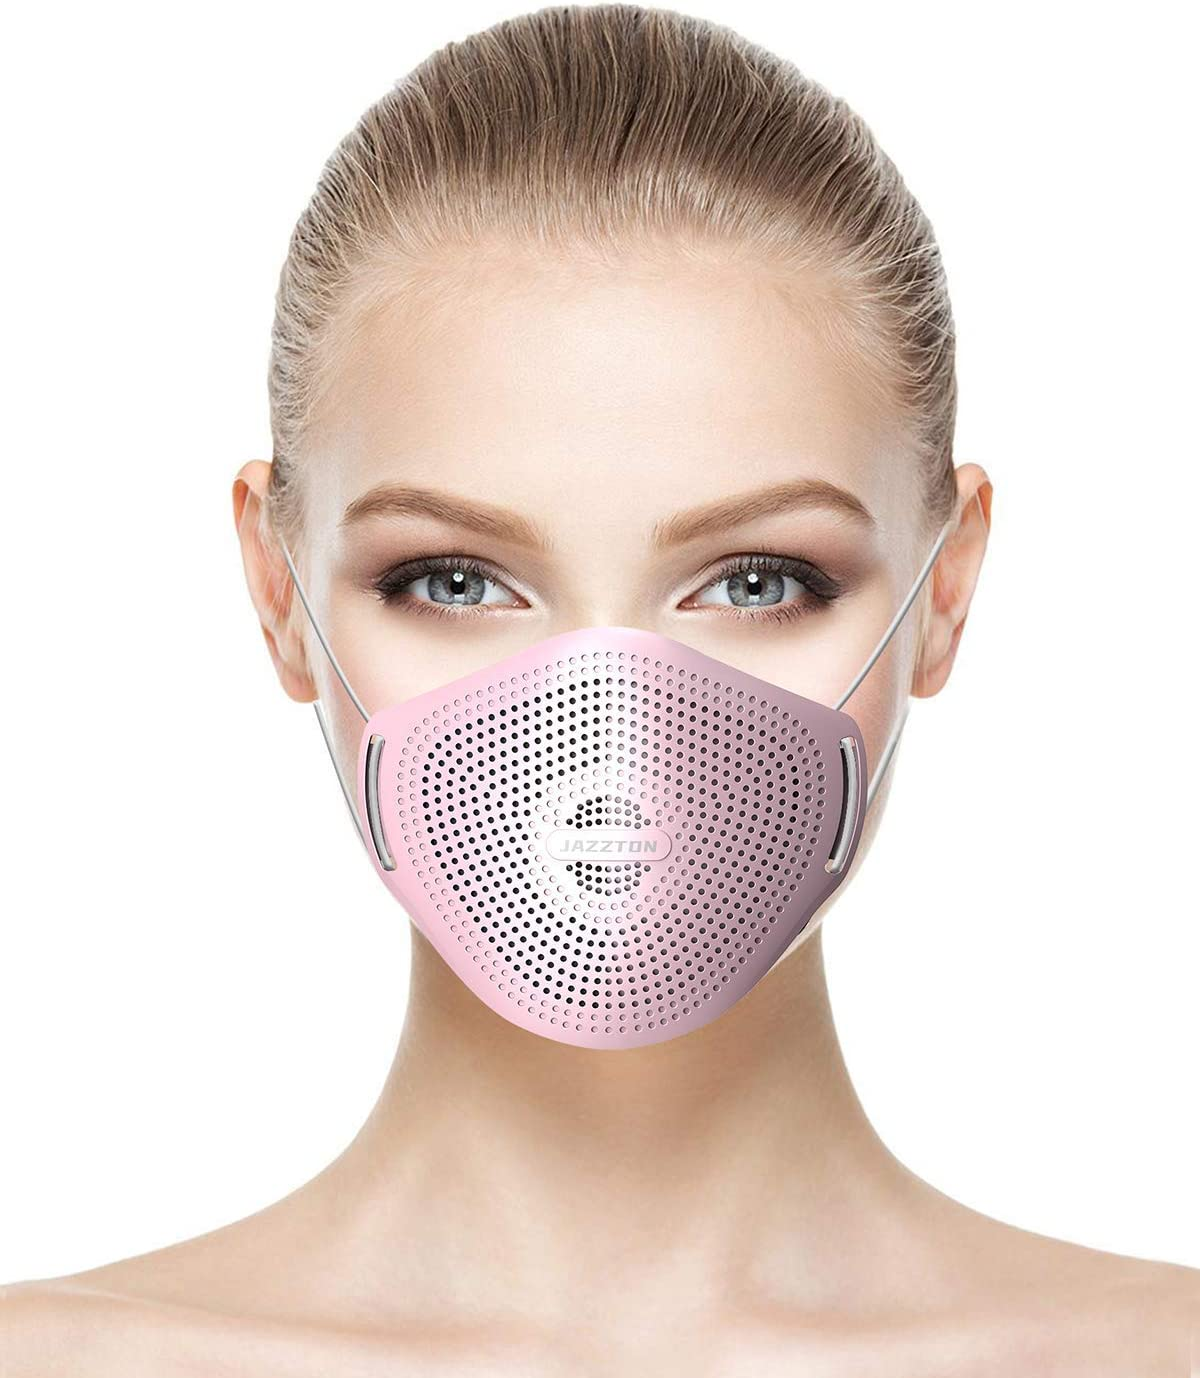 KKPOT Reusable Dust Half Cash special price Respirator Replaceable 5-Ply with Filte Detroit Mall